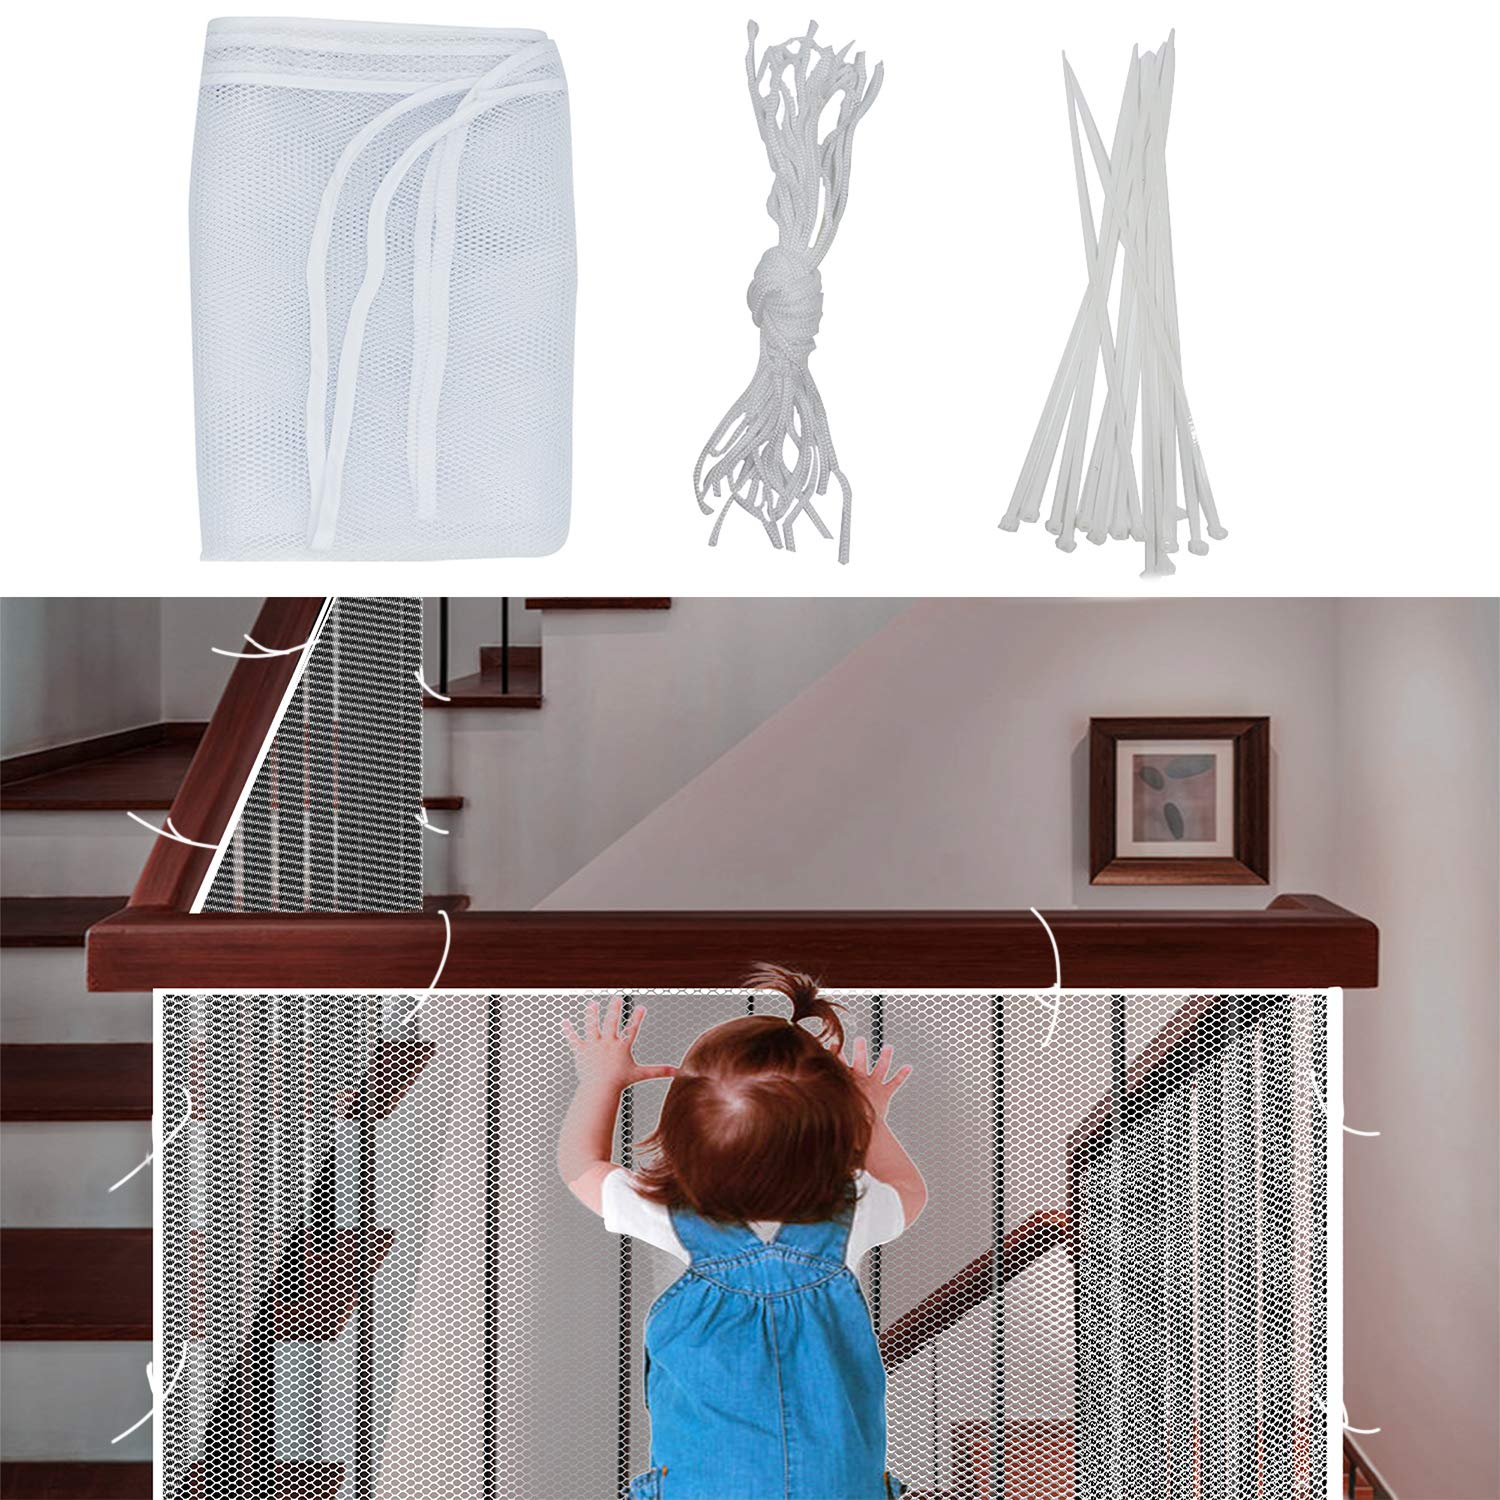 DECARETA Stairway Safety Net,Safety Banister Stair Mesh Net Protector with 15 Ny